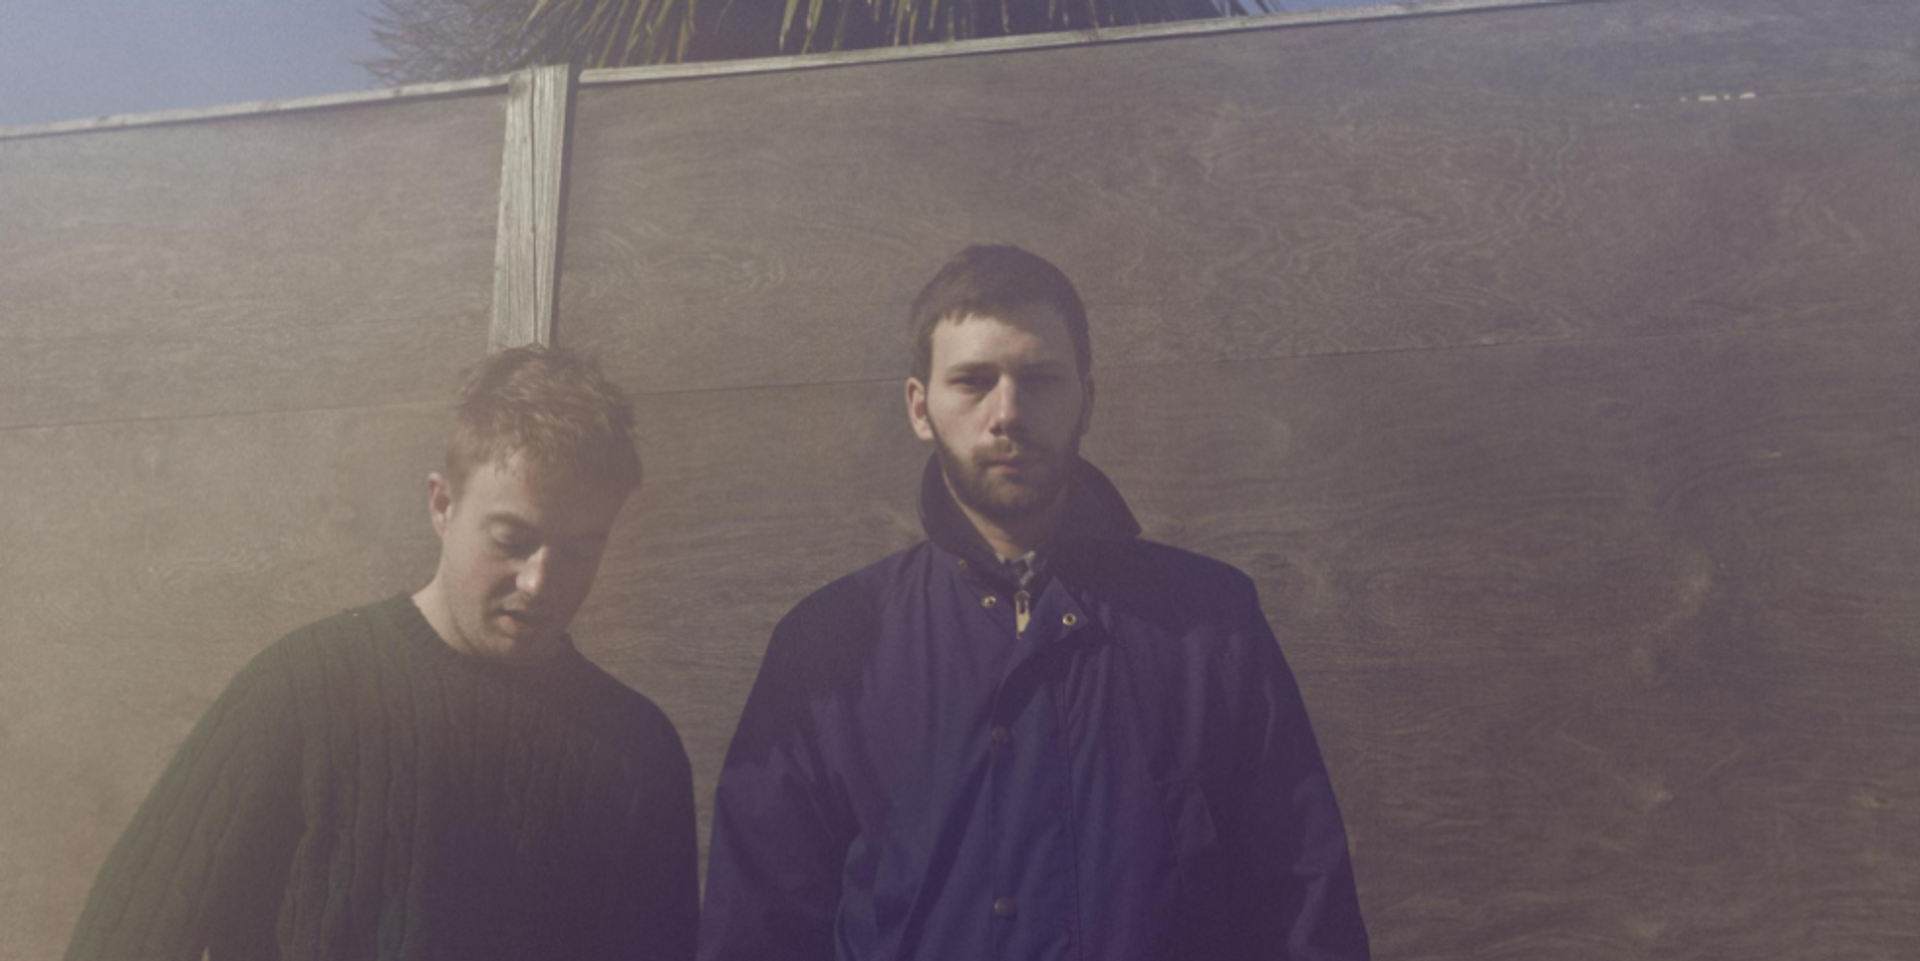 Mount Kimbie to perform in Singapore this March